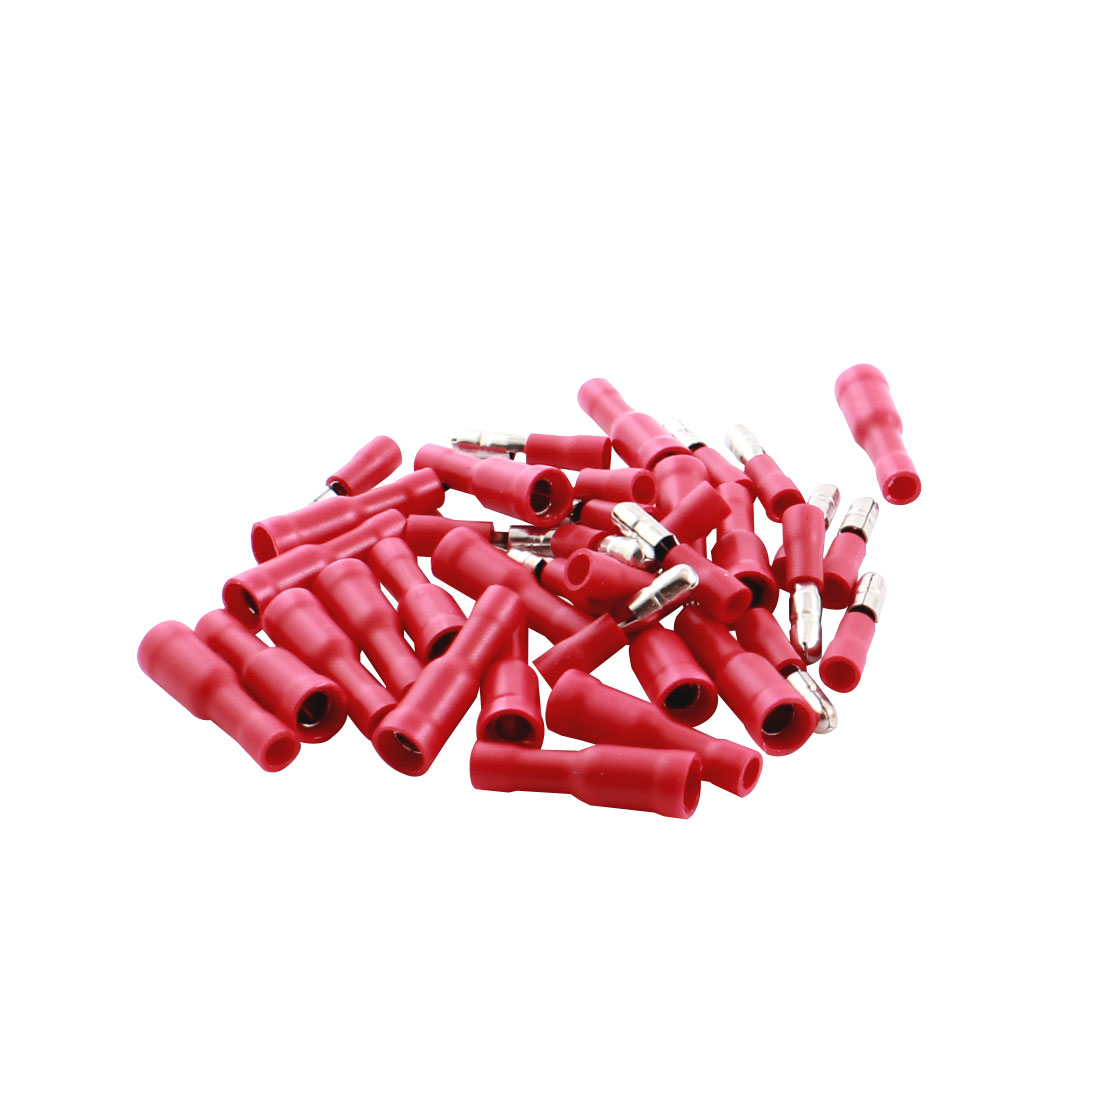 40Pcs FRD2-156 15A Full Insulated Red Male Femal Crimp Terminal Cable Connector for 16-14AWG Wire